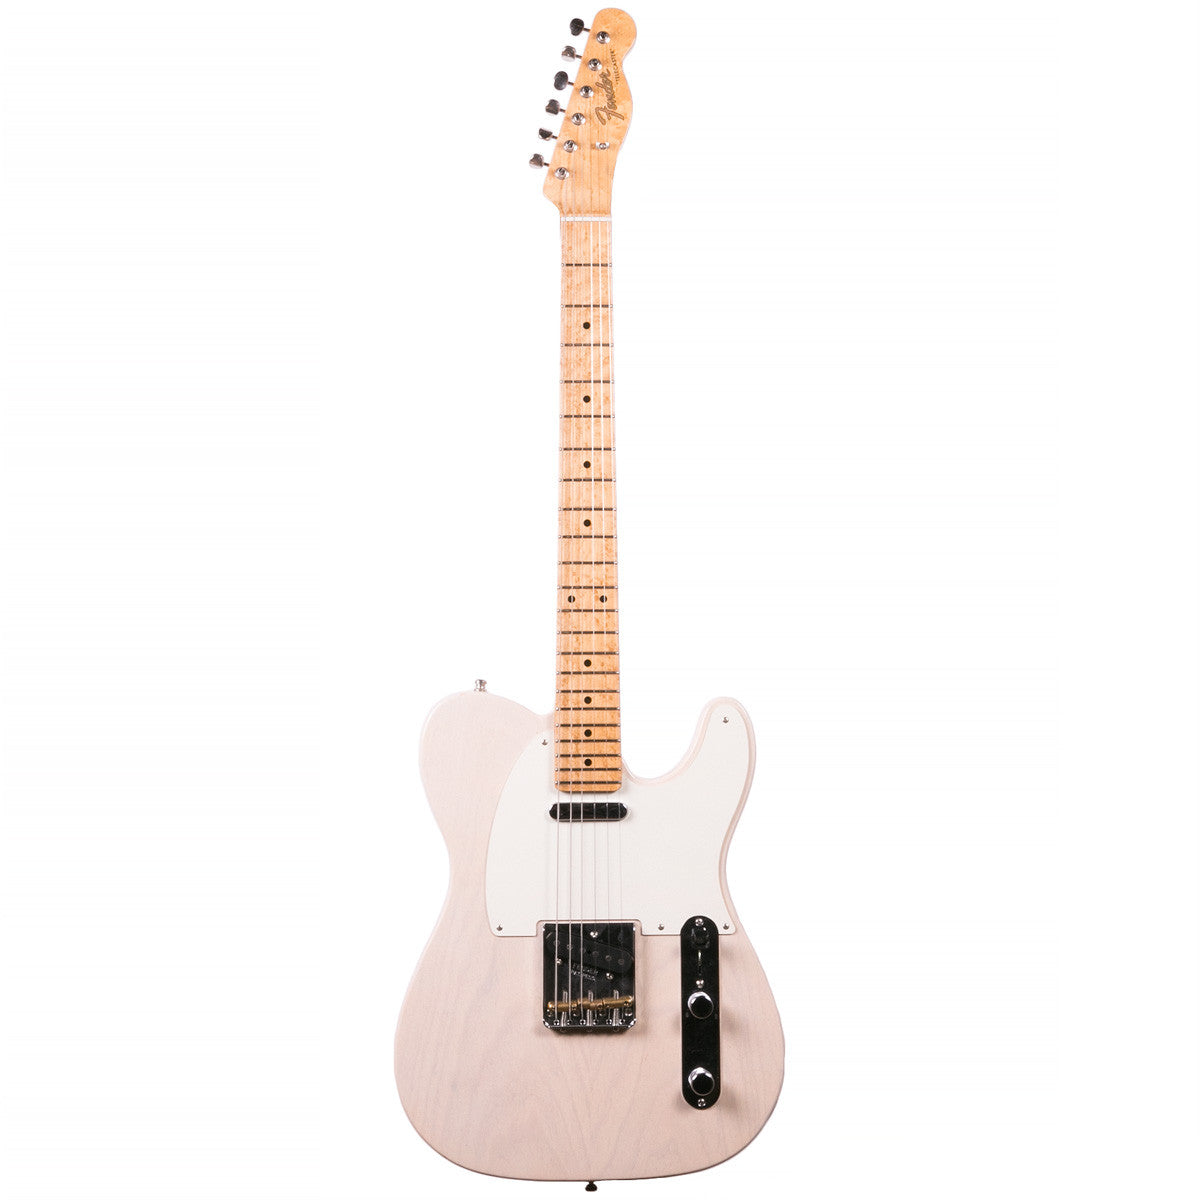 Fender Custom Shop - Postmodern Telecaster, Maple  - Lush Closet Classic - Aged White Blonde - Vintage Guitar Boutique